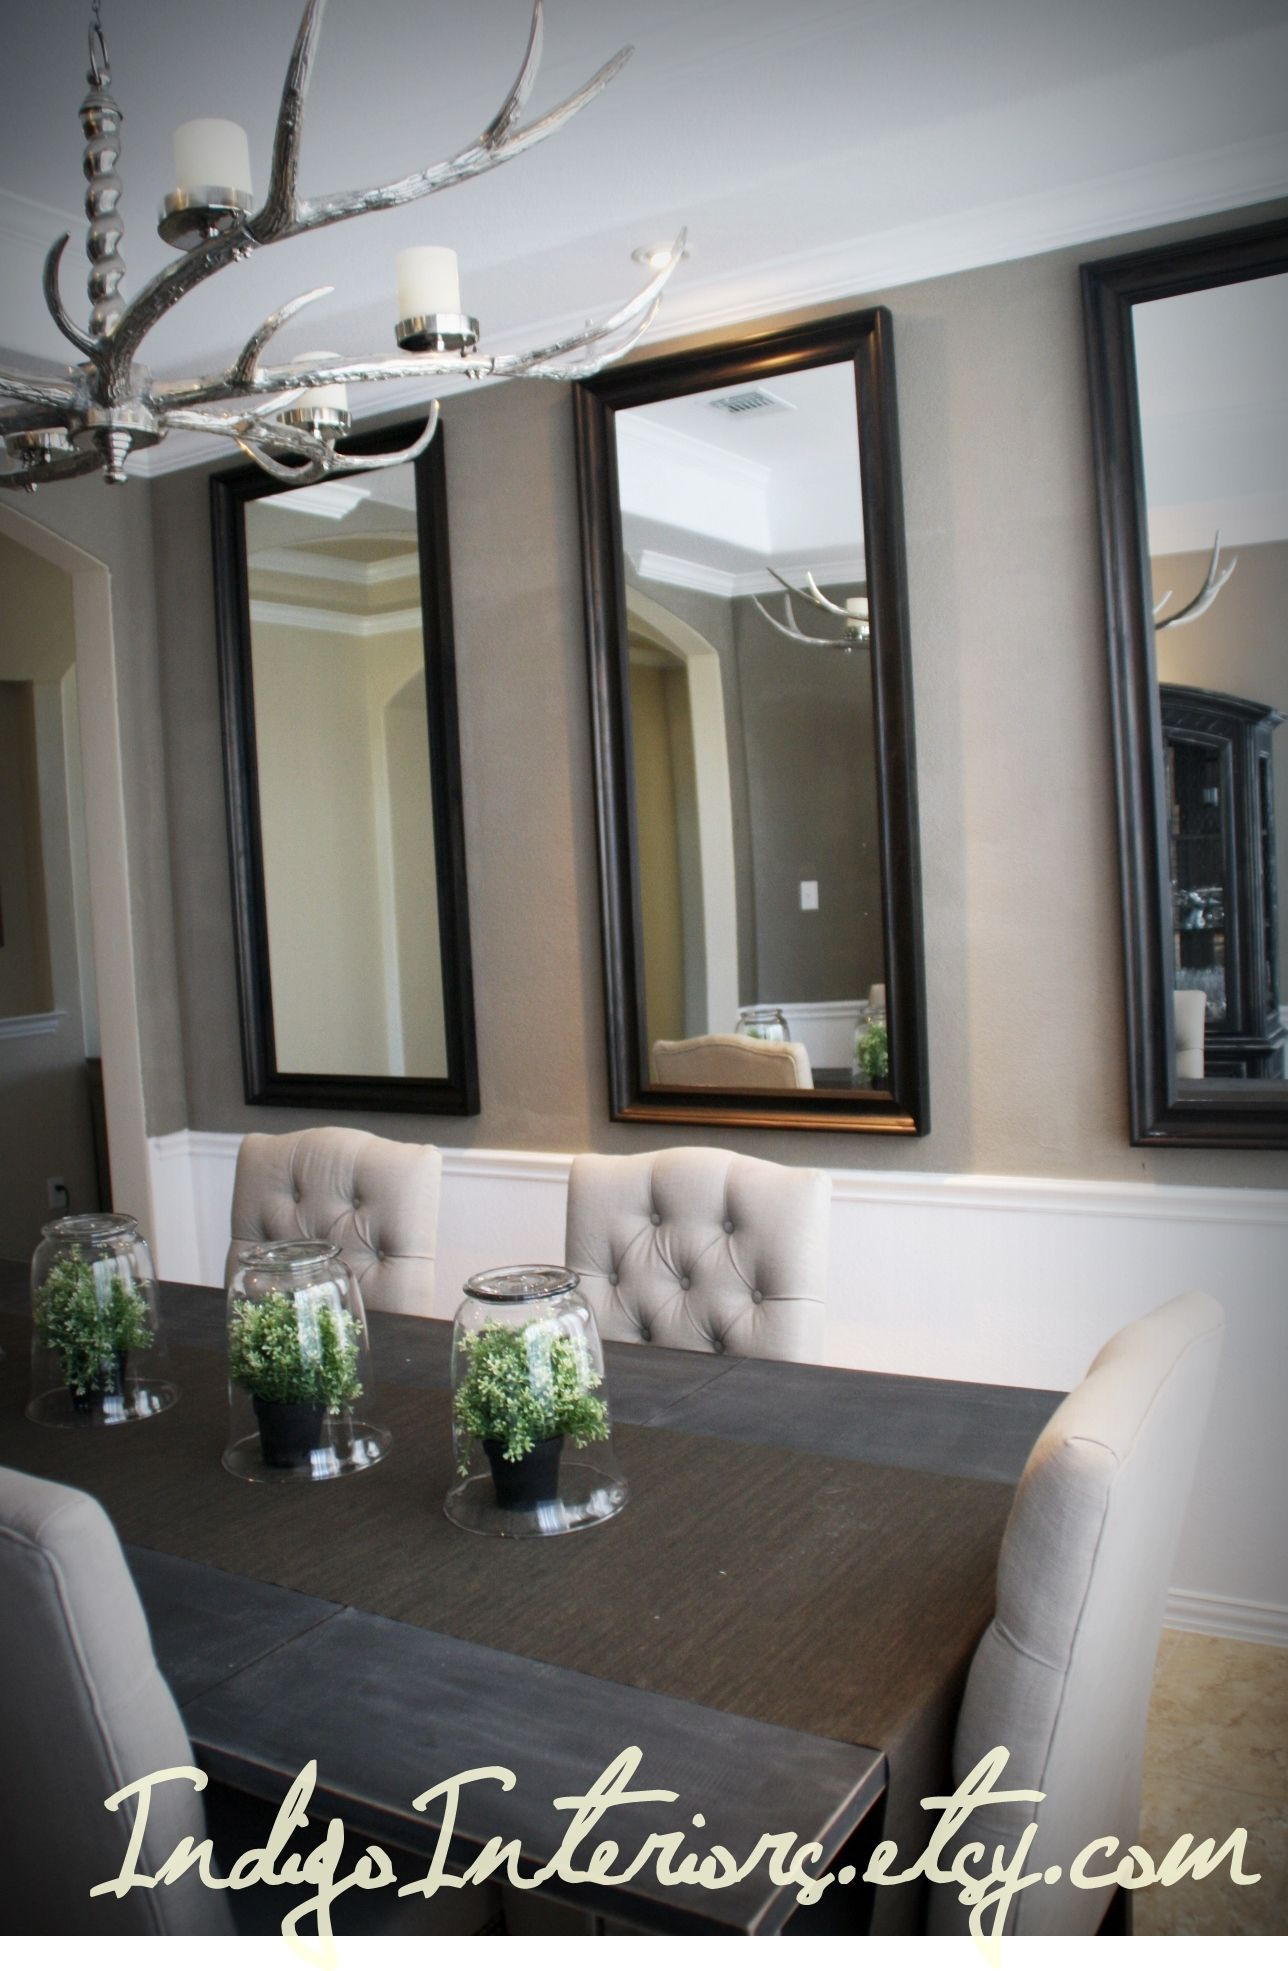 Make A Statement In The Dining Room With Three Large Mirrors Hanging Vertically